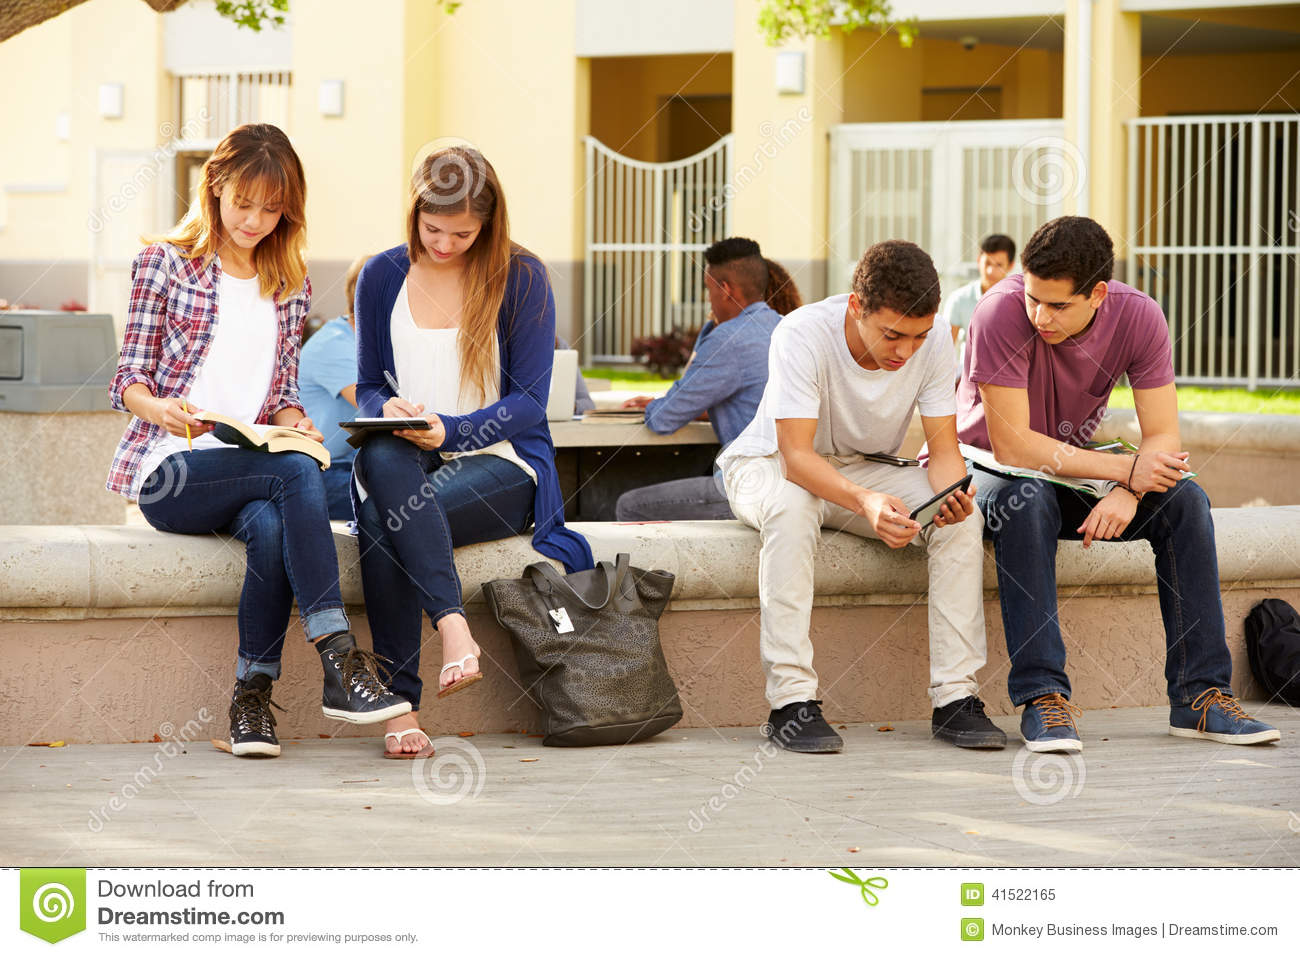 Easy Products For write my essay online Considered